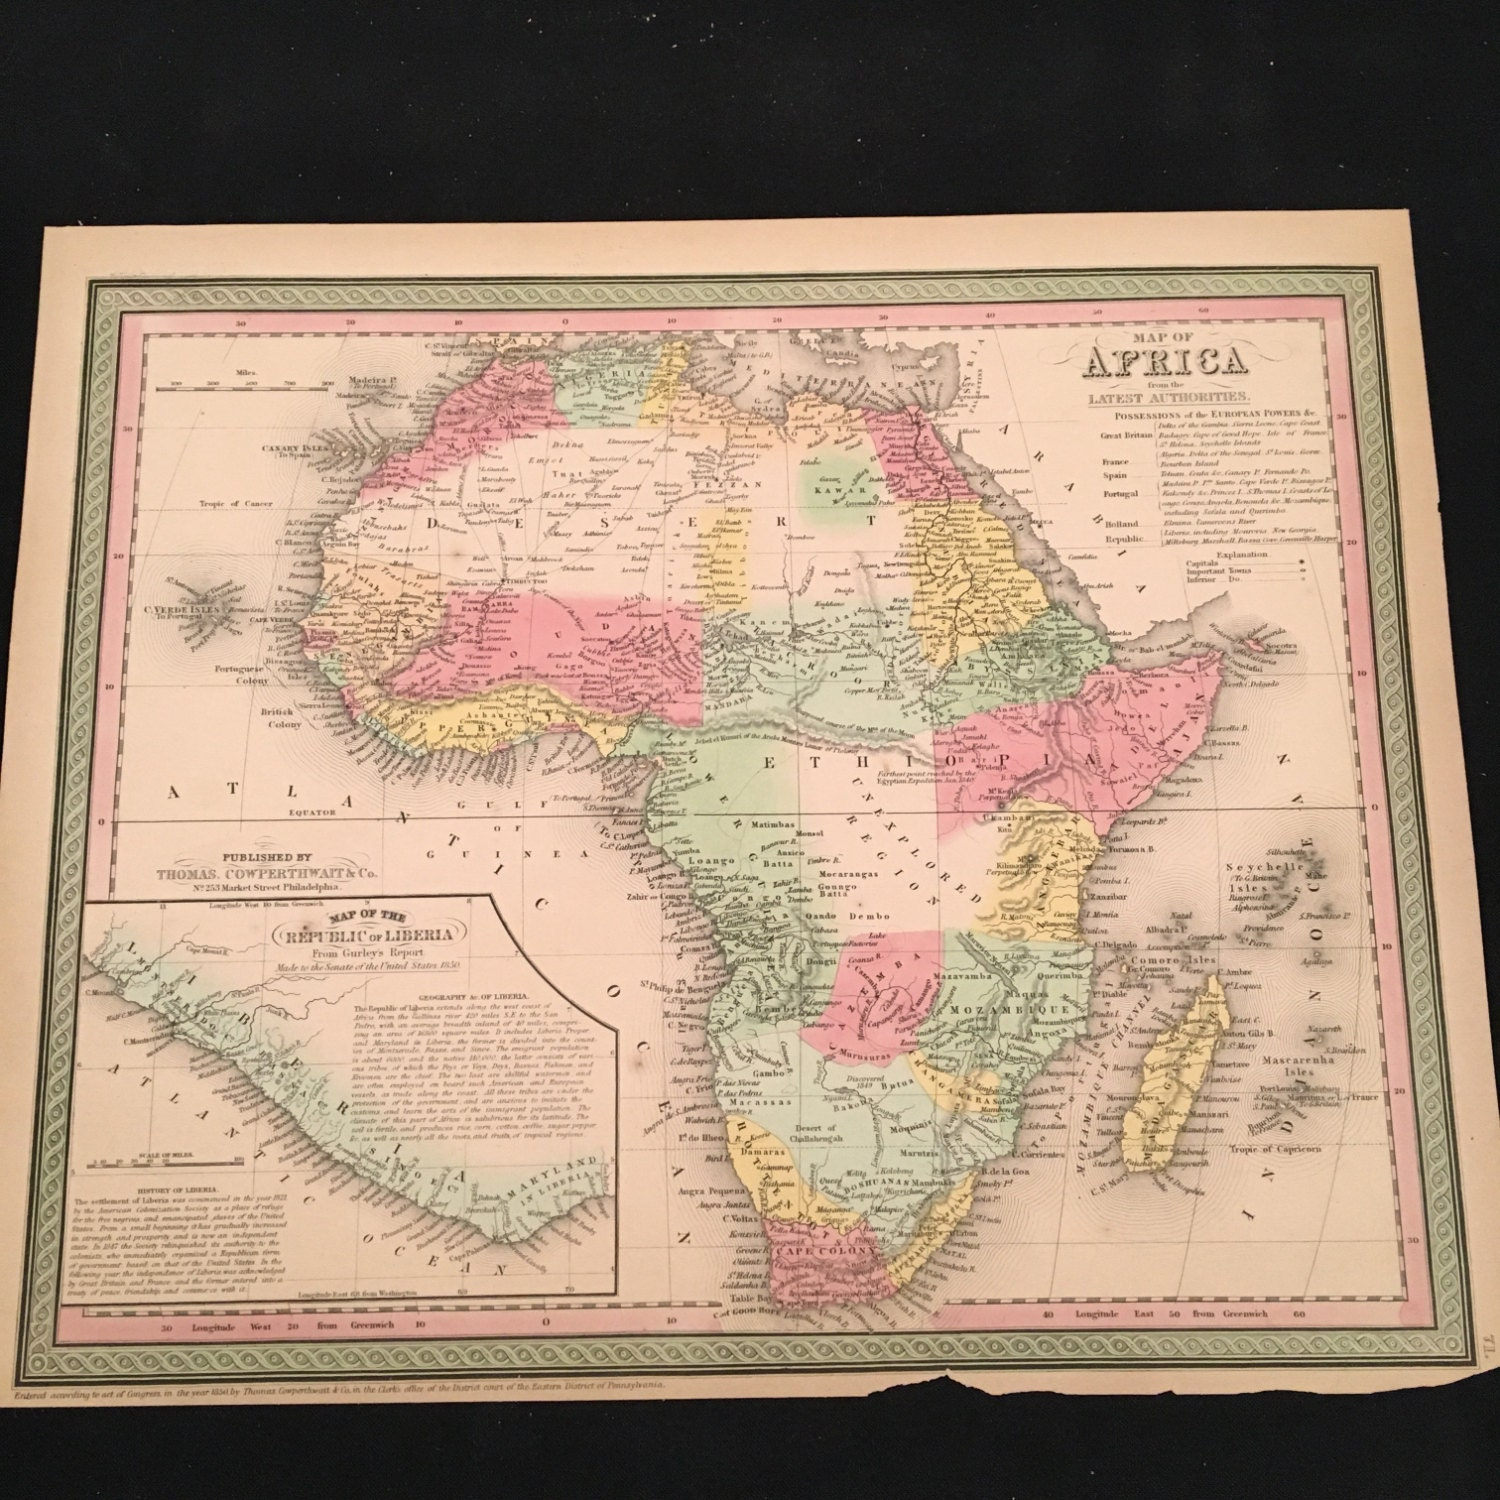 Map Of Africa 1850.1850 Antique Africa Map Original 19th Century Hand Colored Etsy